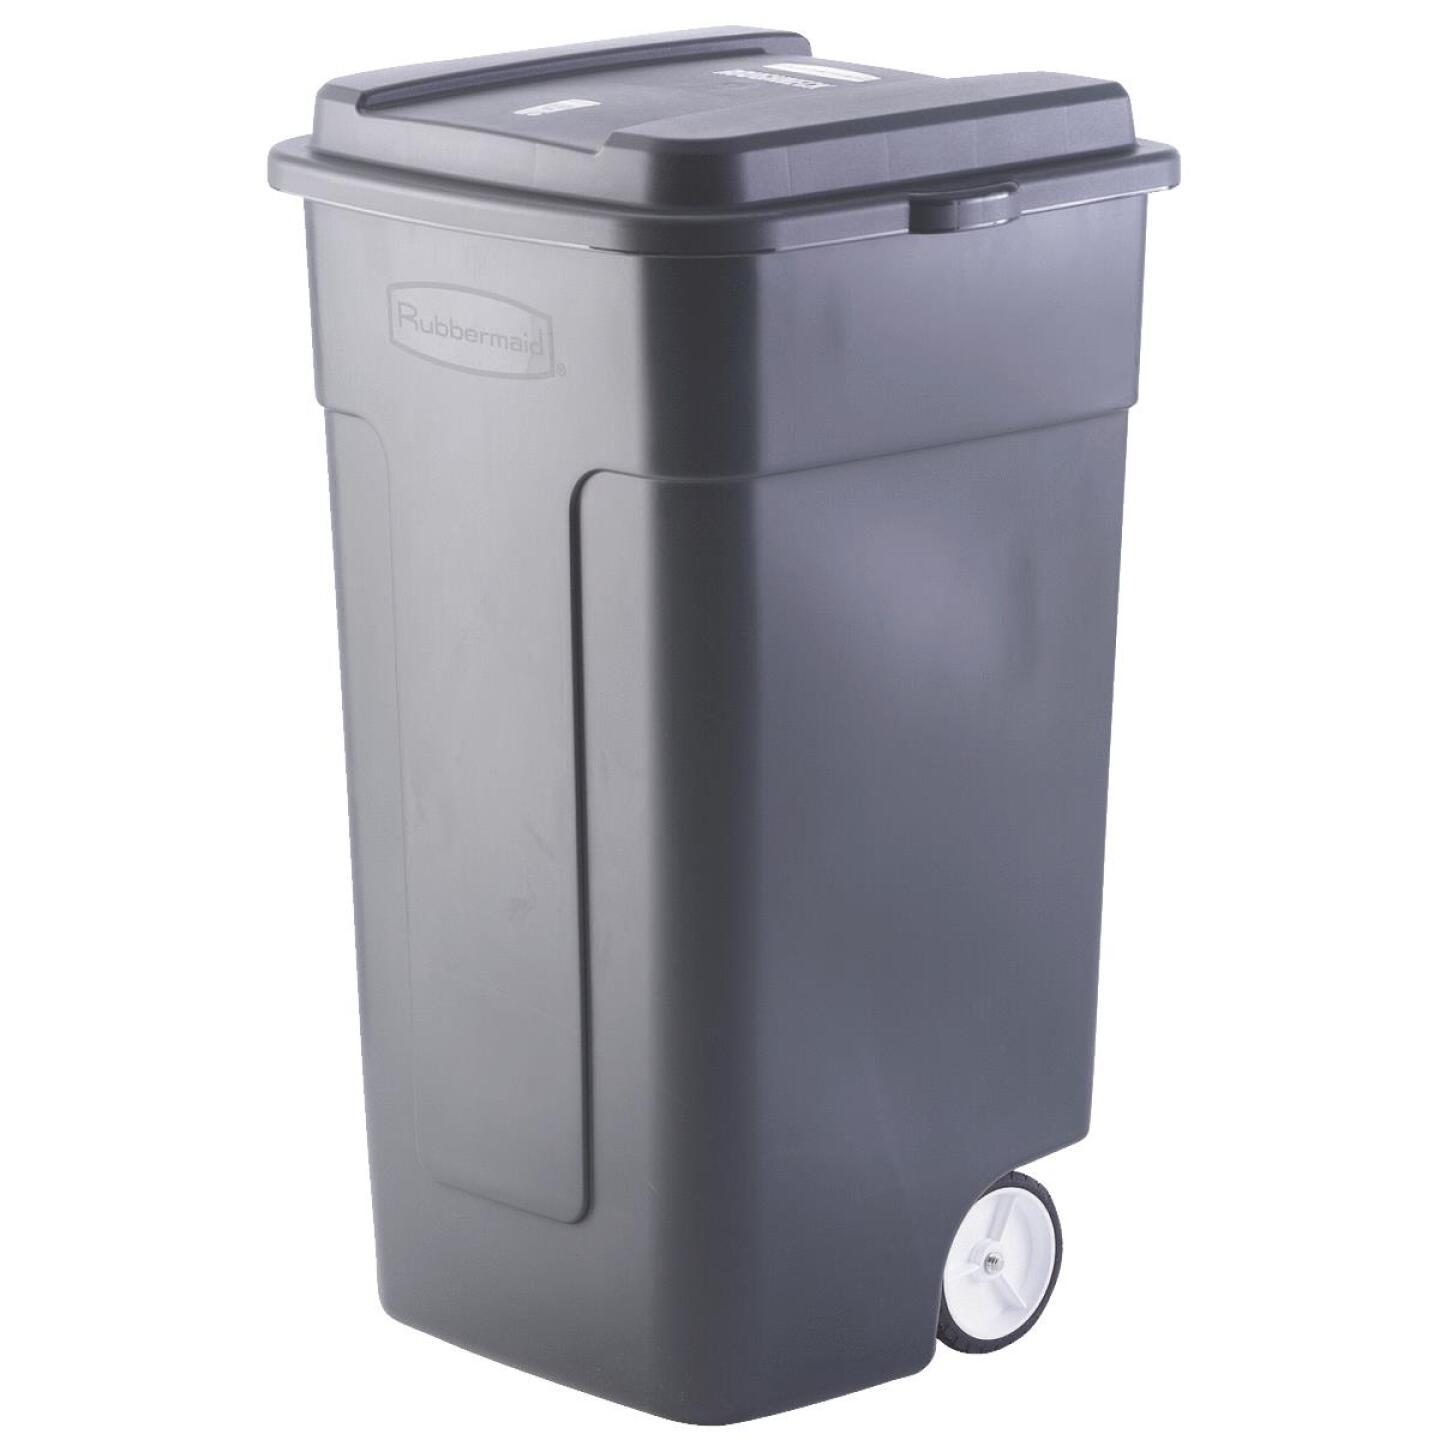 Rubbermaid 50 Gal. Black Wheeled Trash Can with Lid Image 1